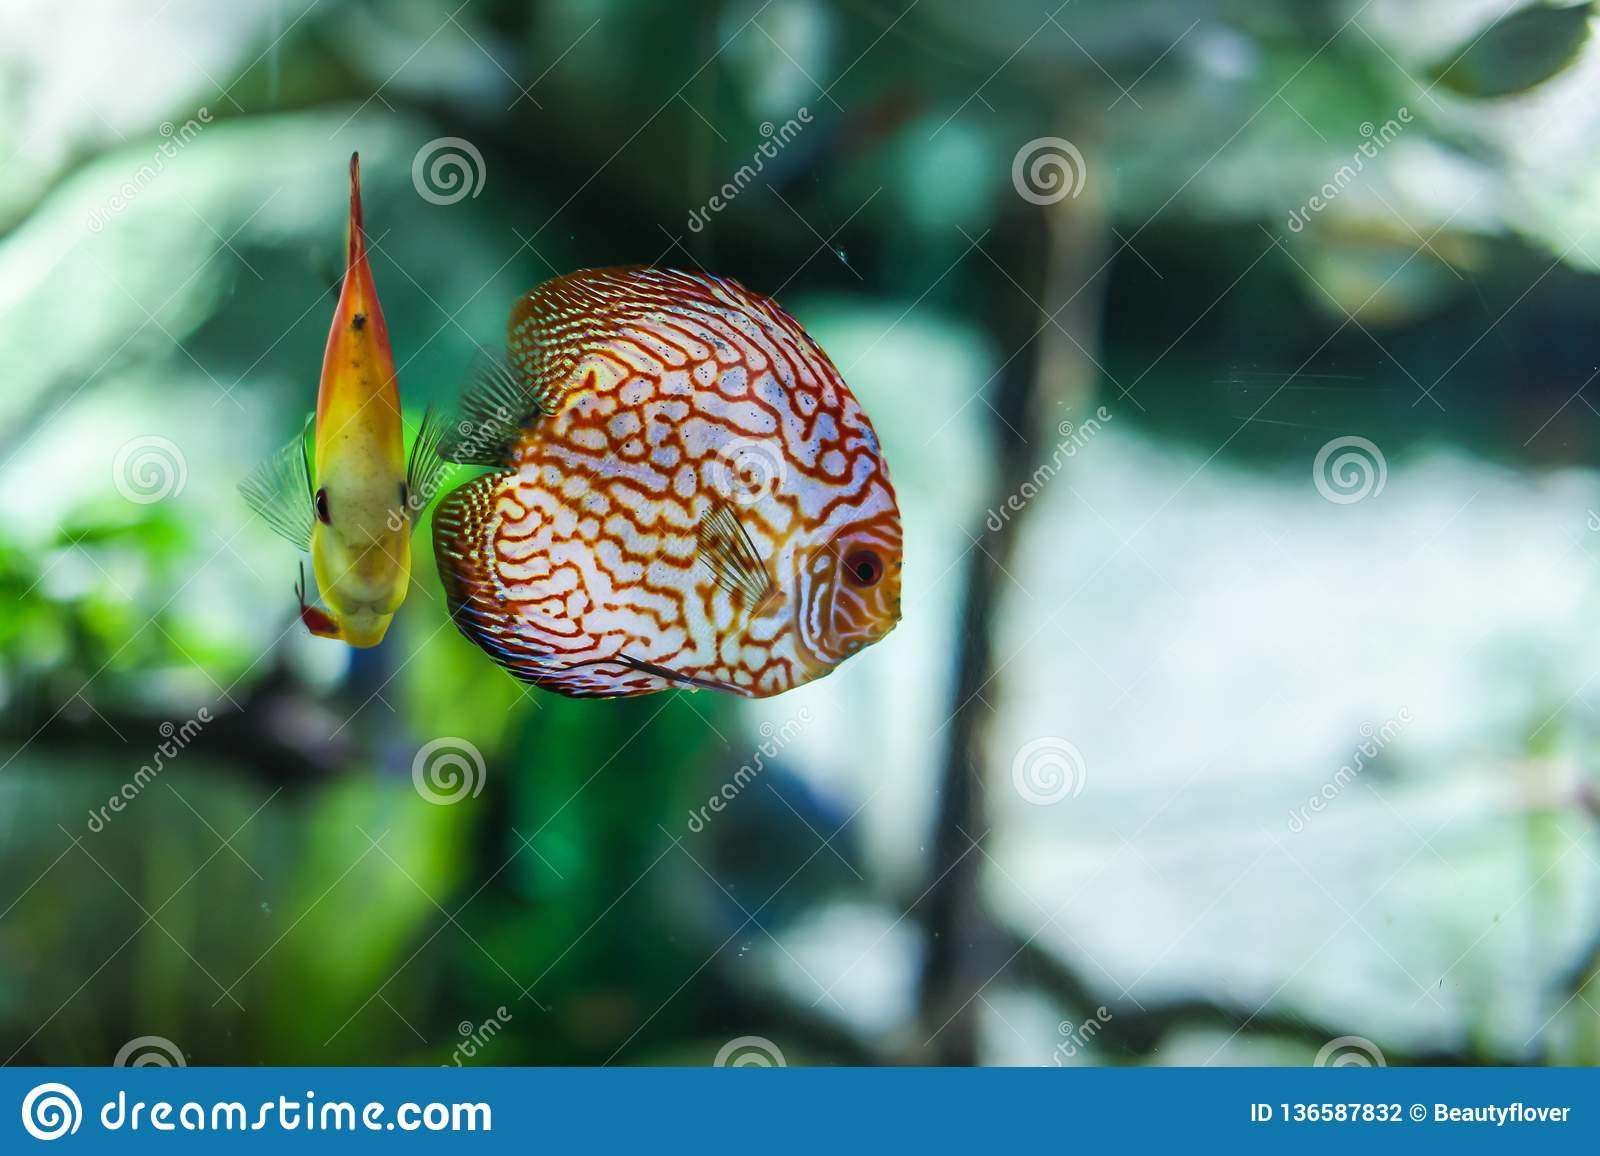 Symphysodon discus funny colorful fish in an aquarium on a green background